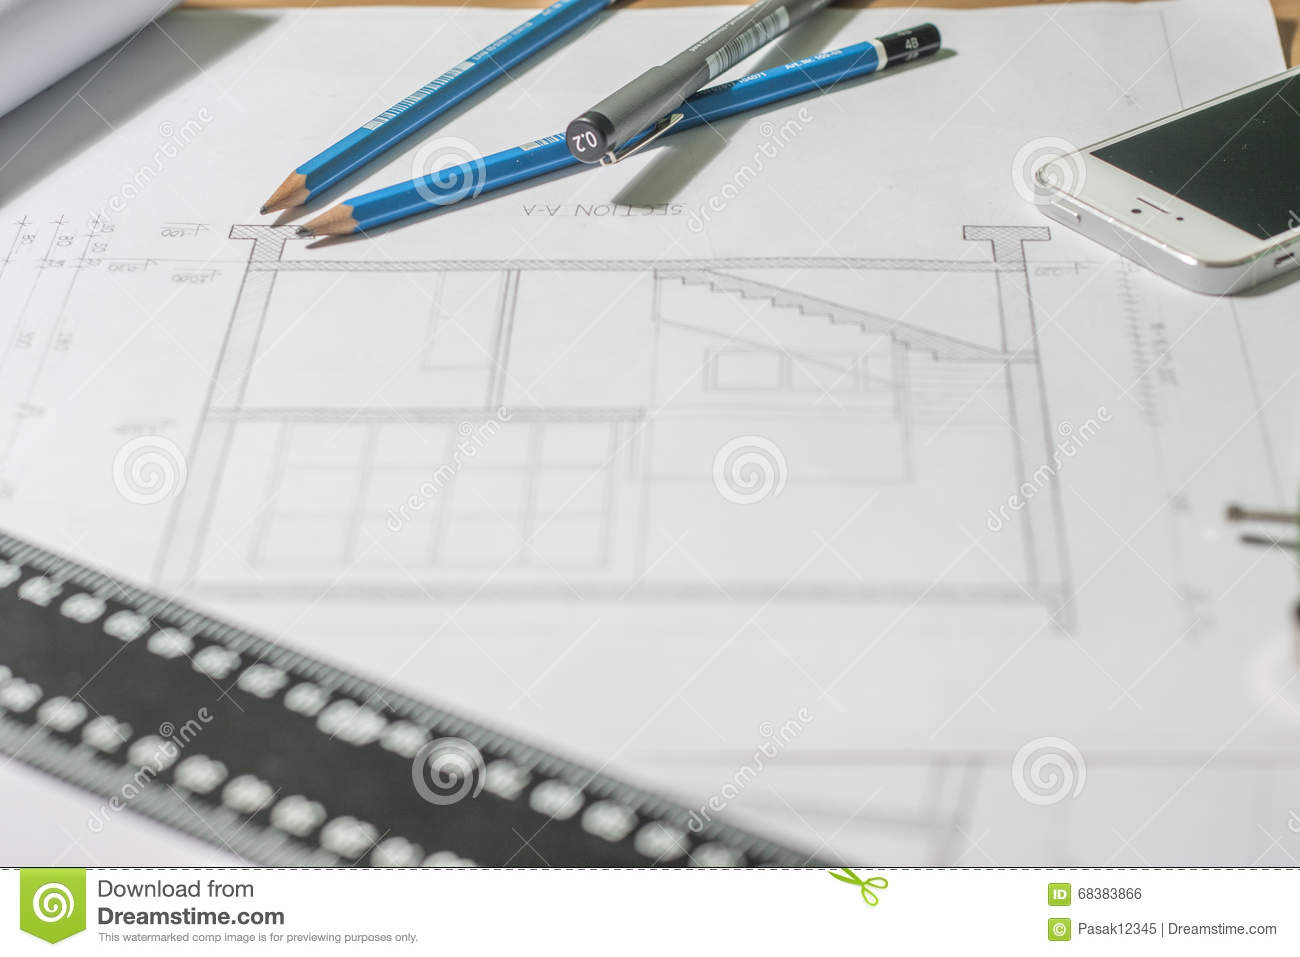 Hook up drawing designing for instruments